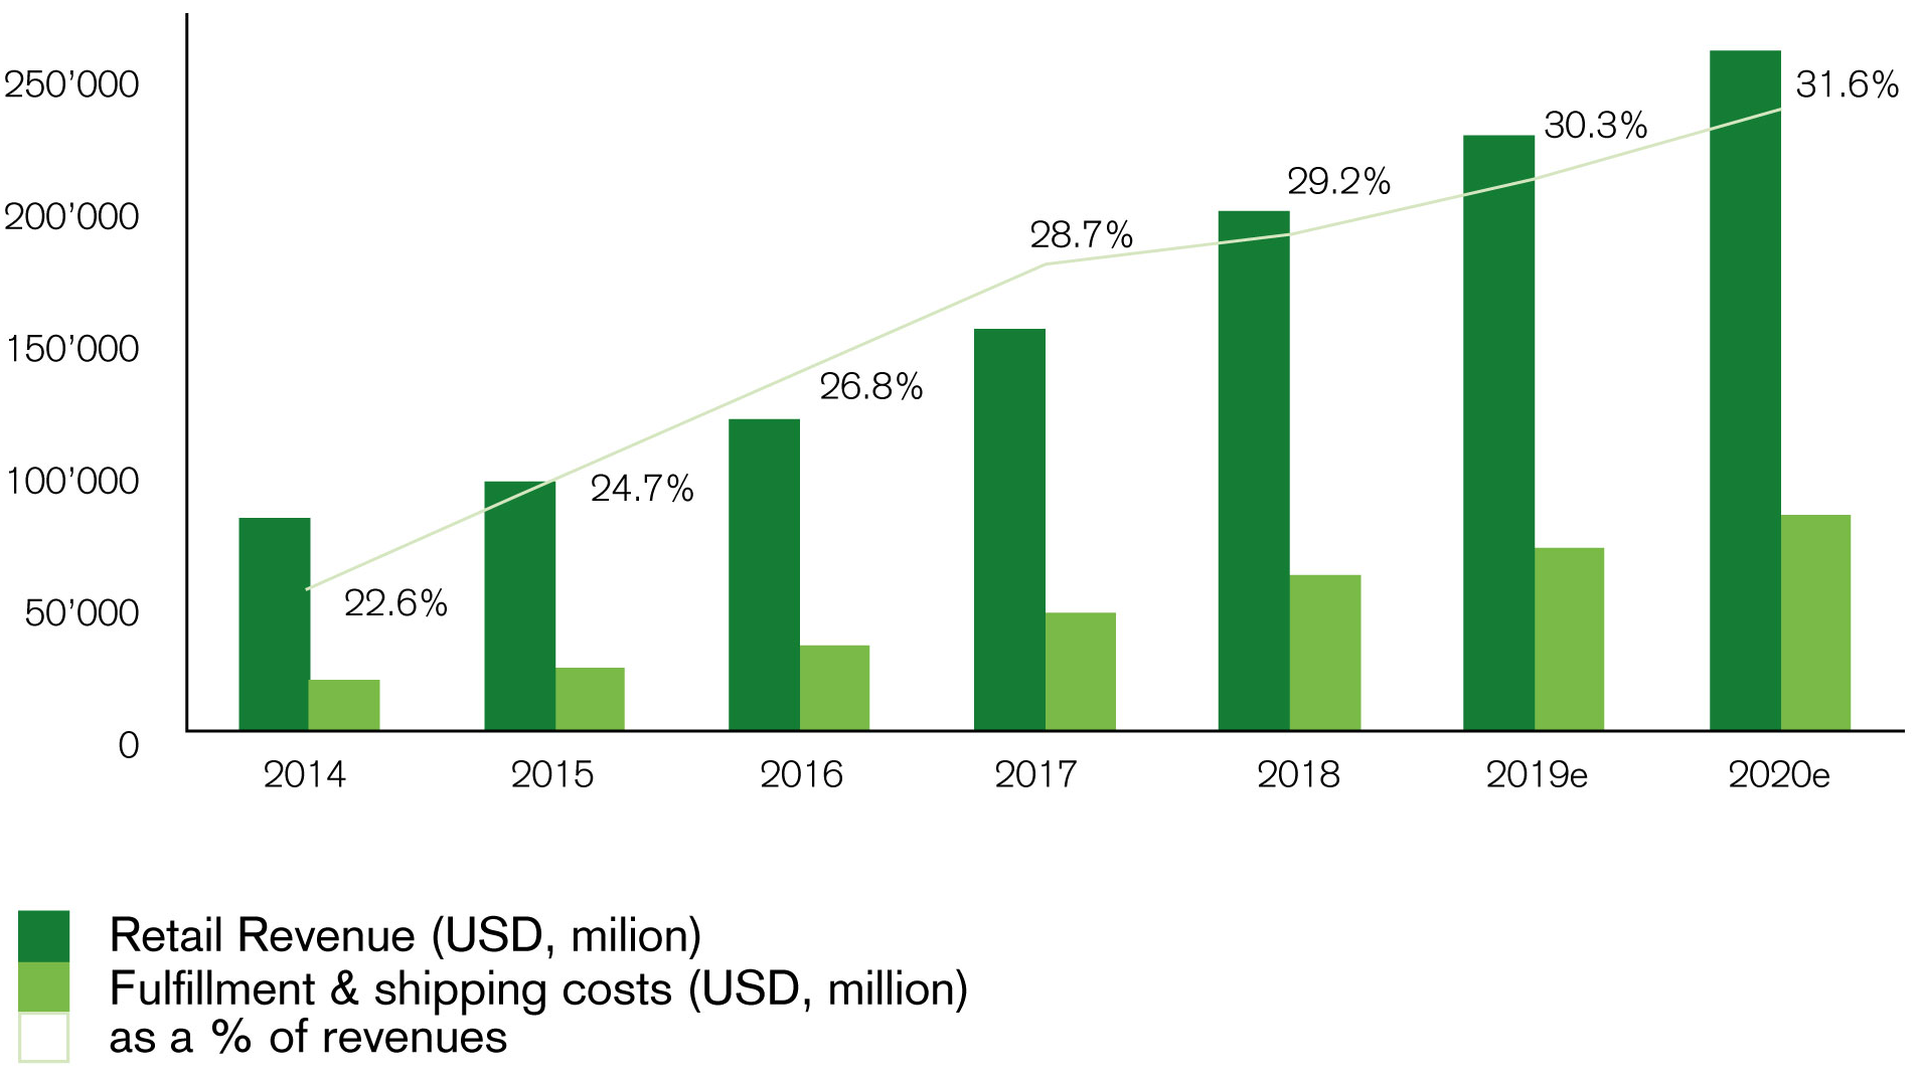 Chart 1b. Rising trend of distribution costs at Amazon